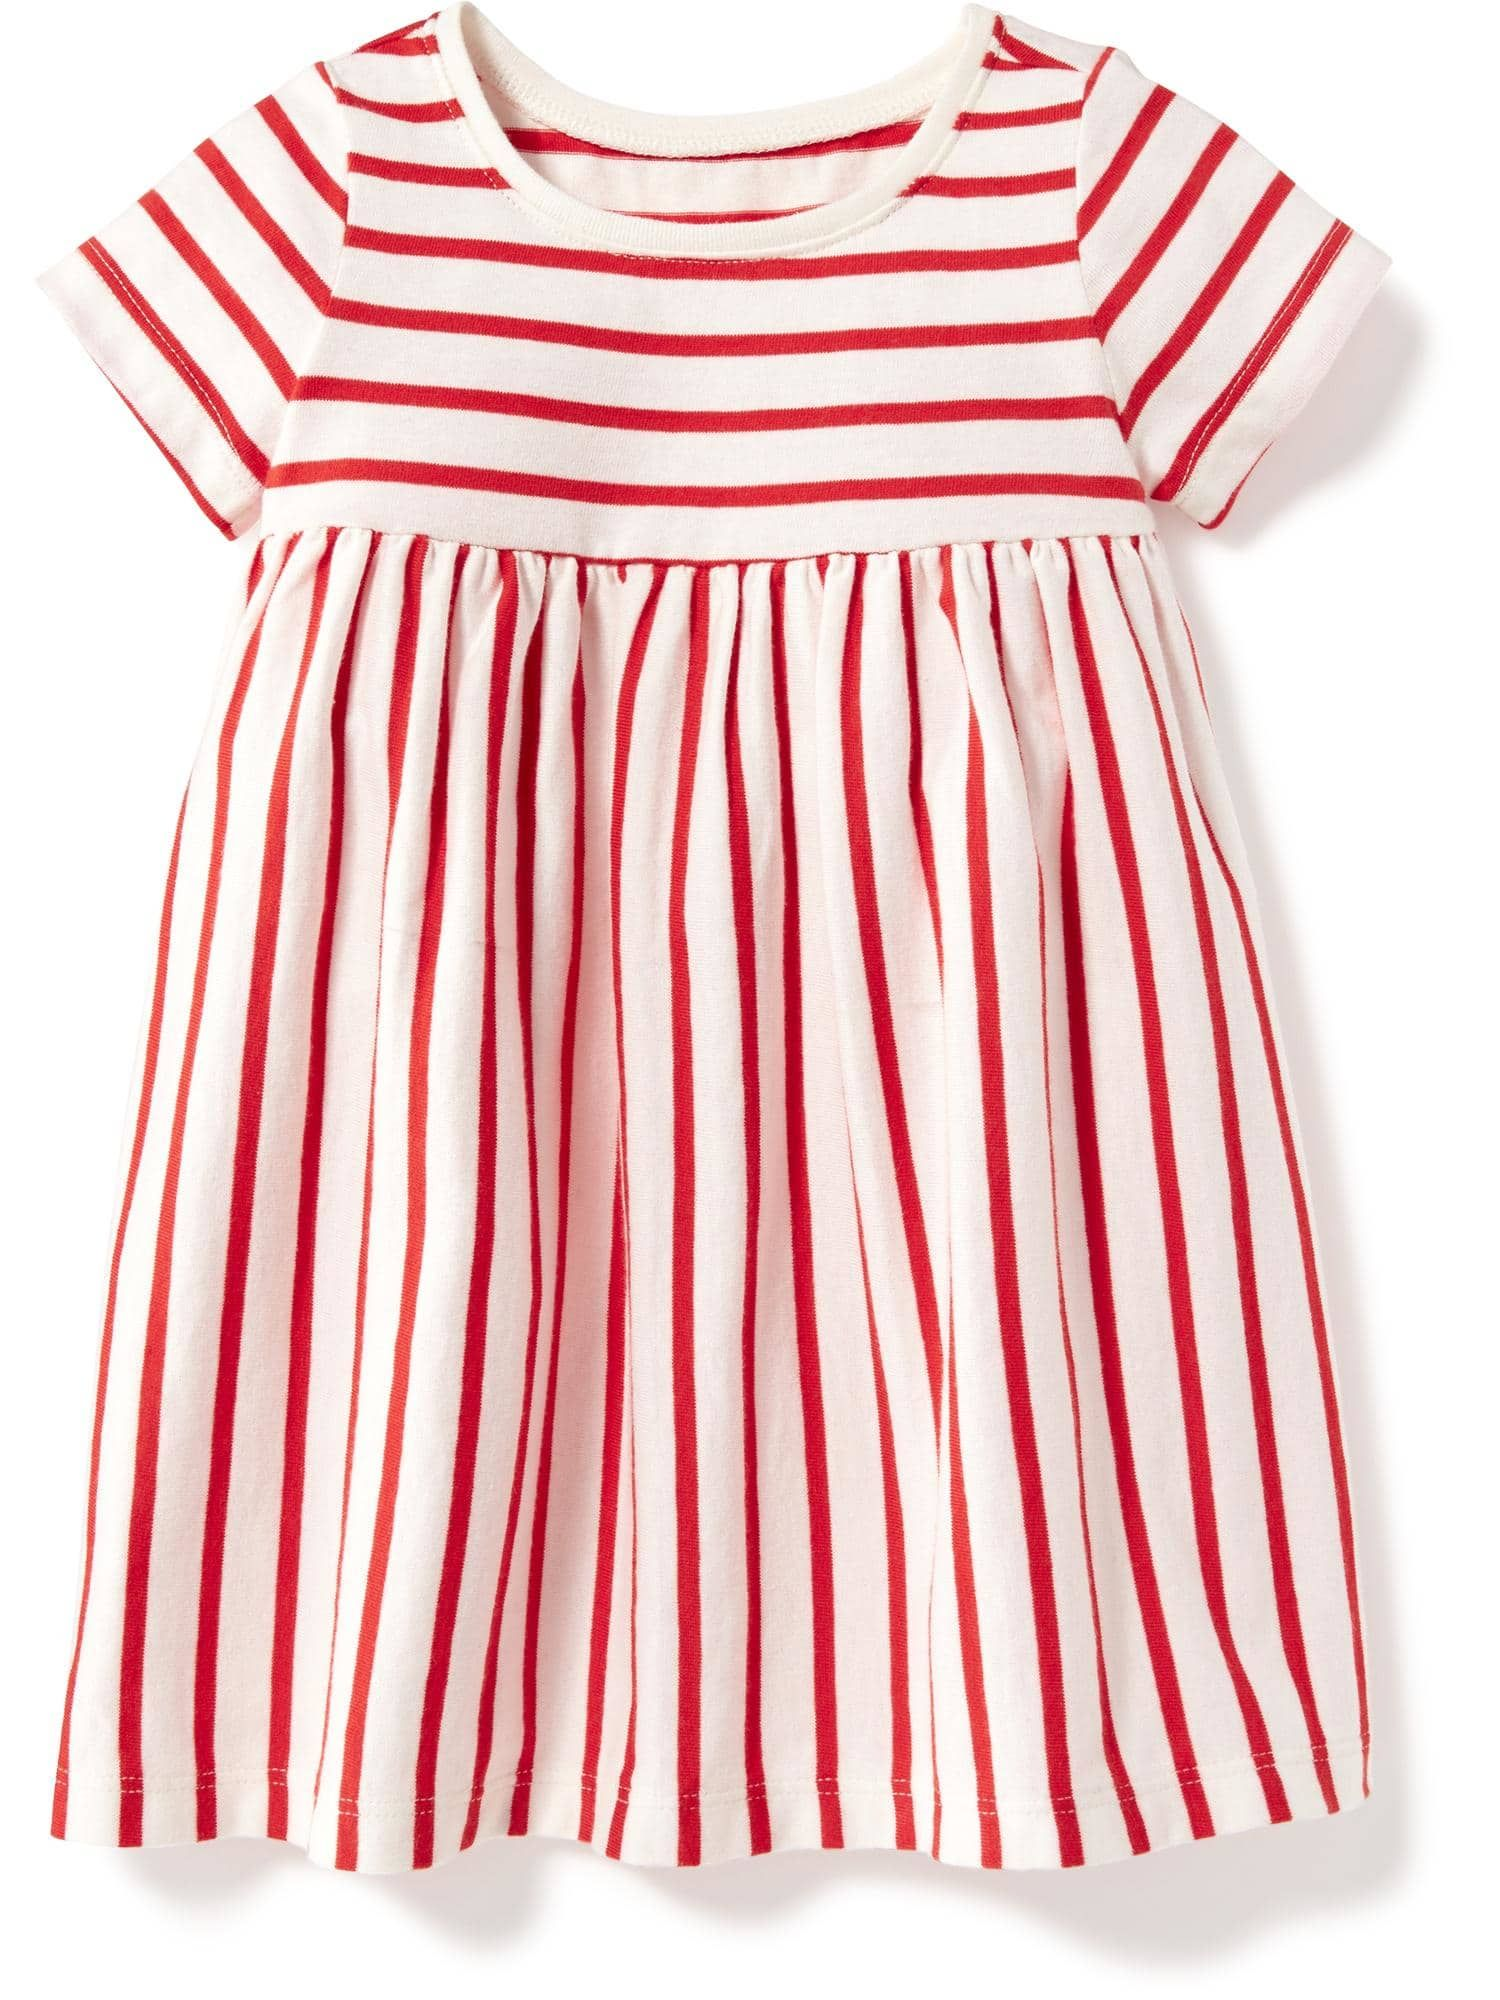 Striped red jersey dress